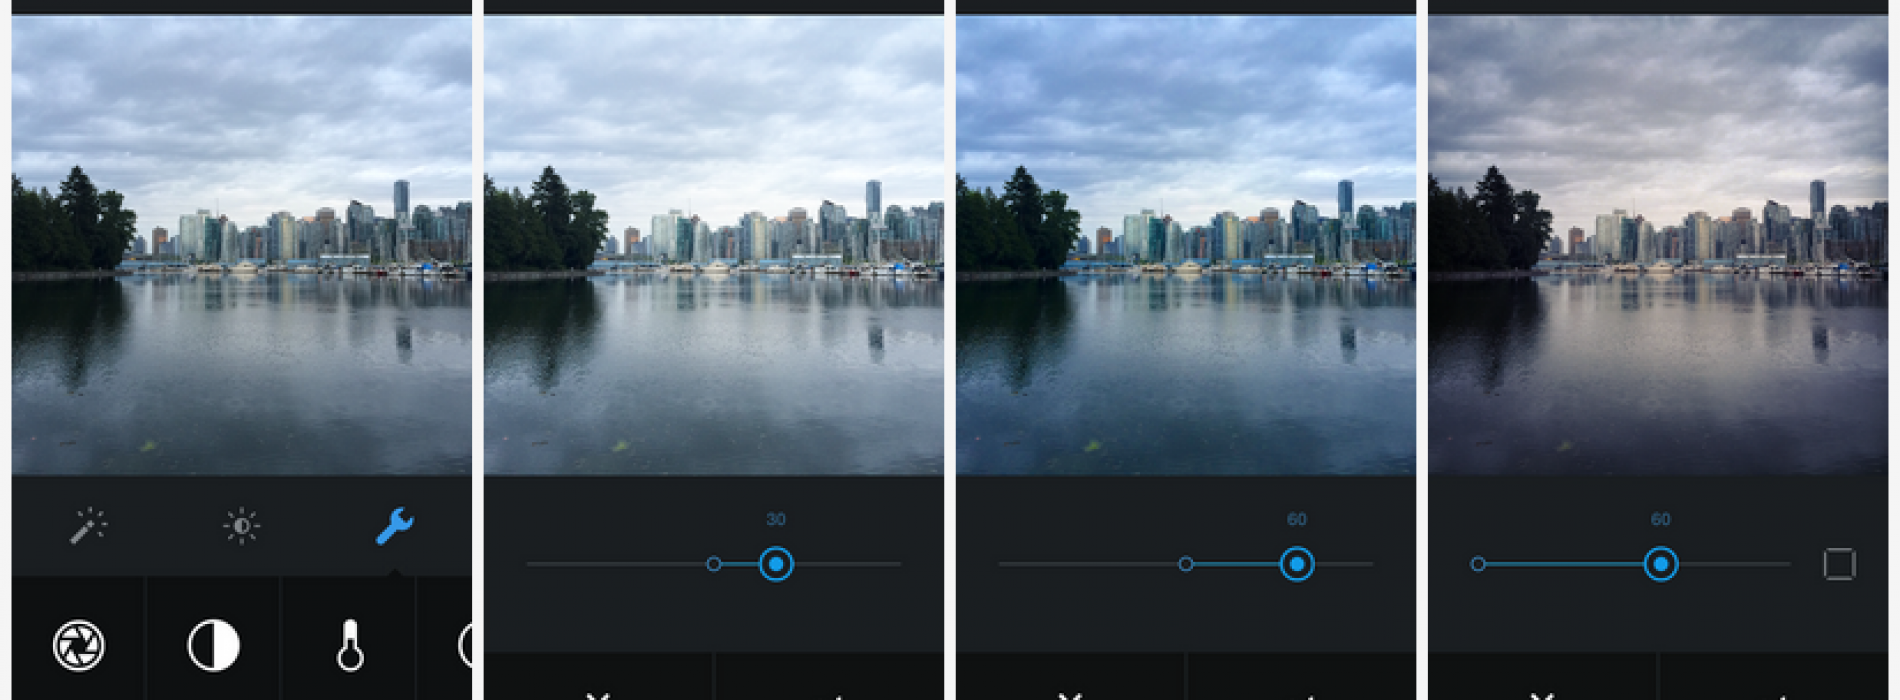 Instagram 6.0 arrives with enhanced photo editing tools